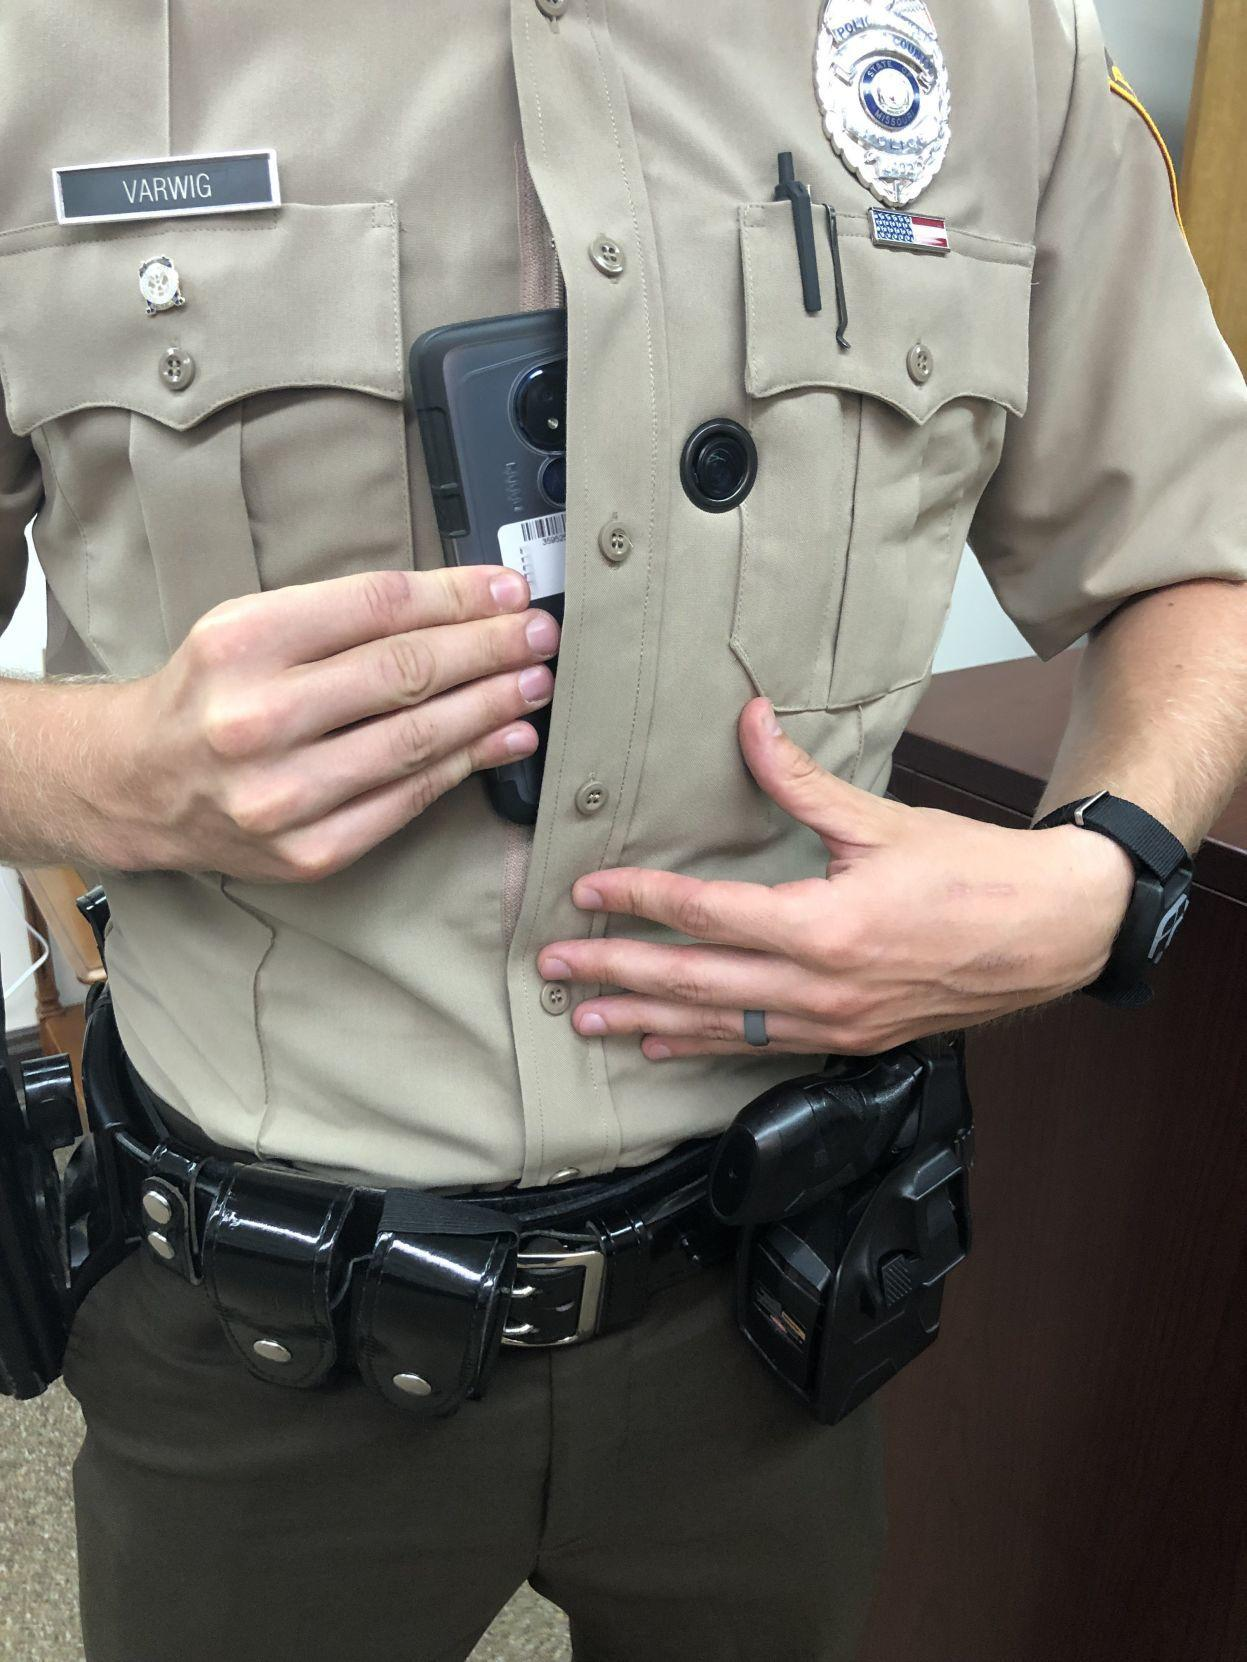 About 700 St. Louis County police officers will be wearing body cameras by the end of the first quarter in 2020. Photo by Christine Byers of the St. Louis Post-Dispatch